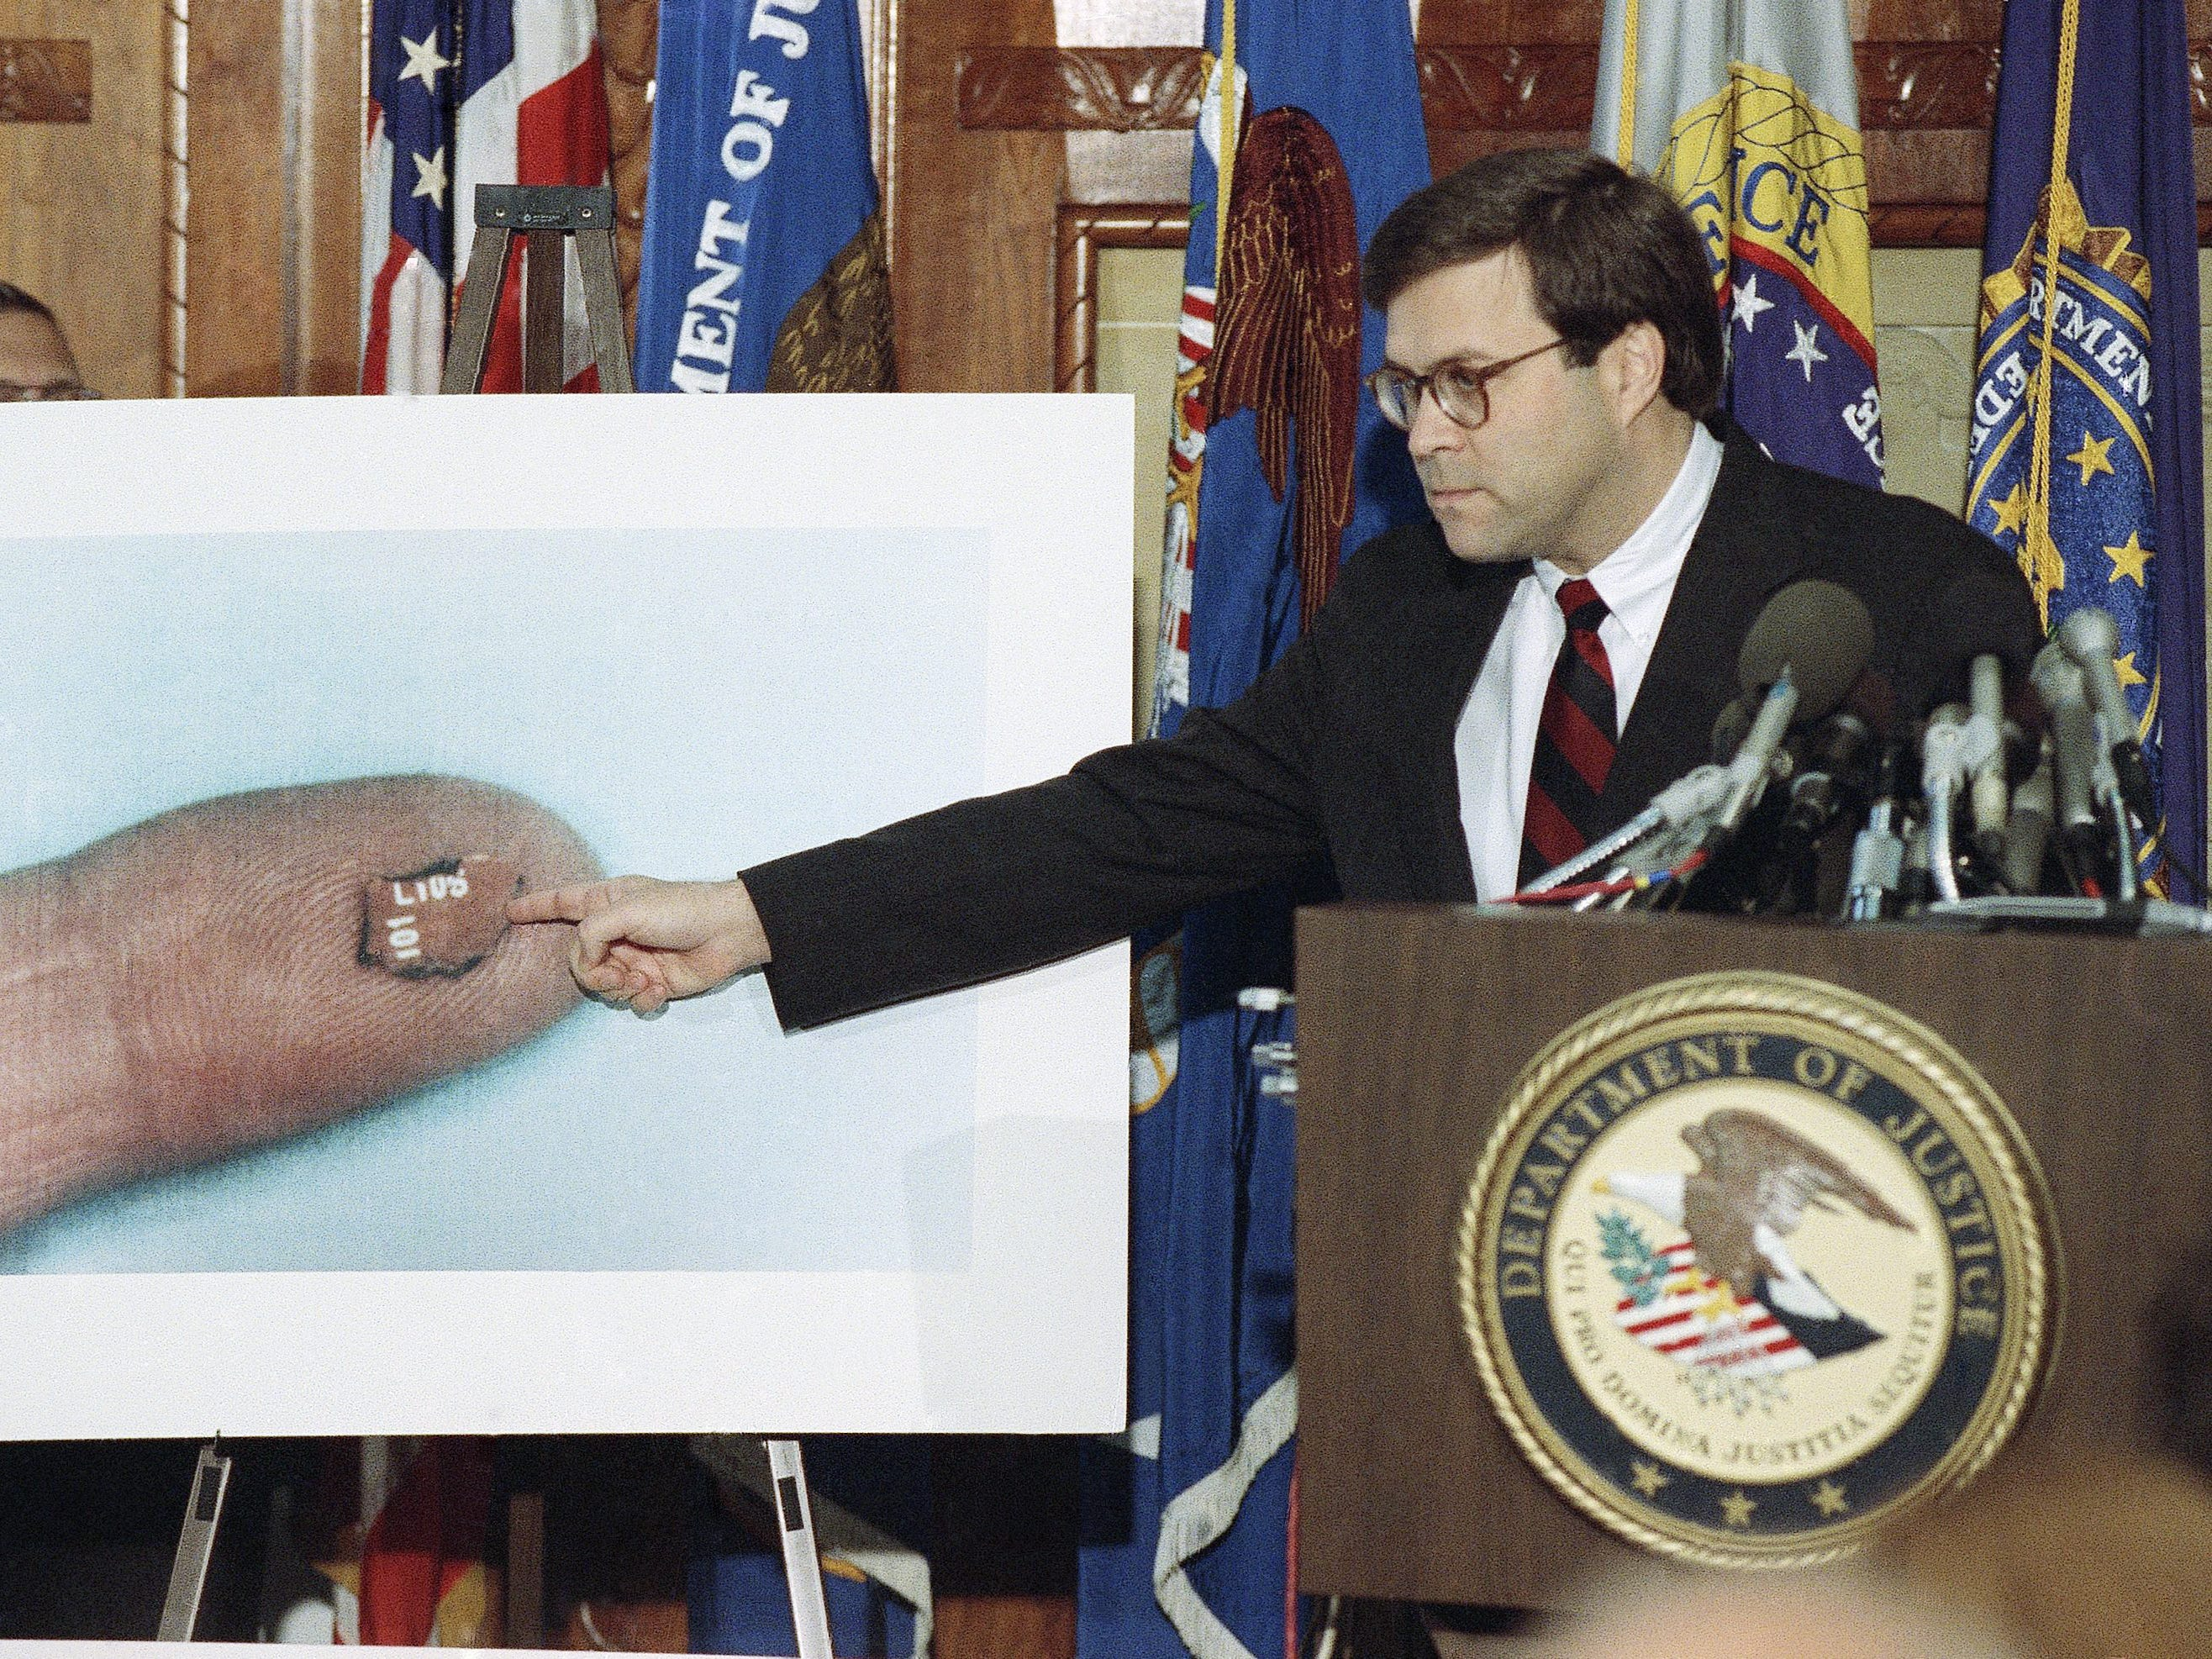 Acting U.S. Attorney General William Barr points to a fragment of a circuit board during a news conference on Pan Am Flight 103 in Washington, Thursday, Nov. 14, 1991. The tiny fragment was described as part of the bomb inside a portable radio. Two Libyan intelligence officials were indicted on Thursday in the bombing of the plane over Lockerbie, Scotland in 1988, which killed 270 people. (AP Photo/Barry Thumma)